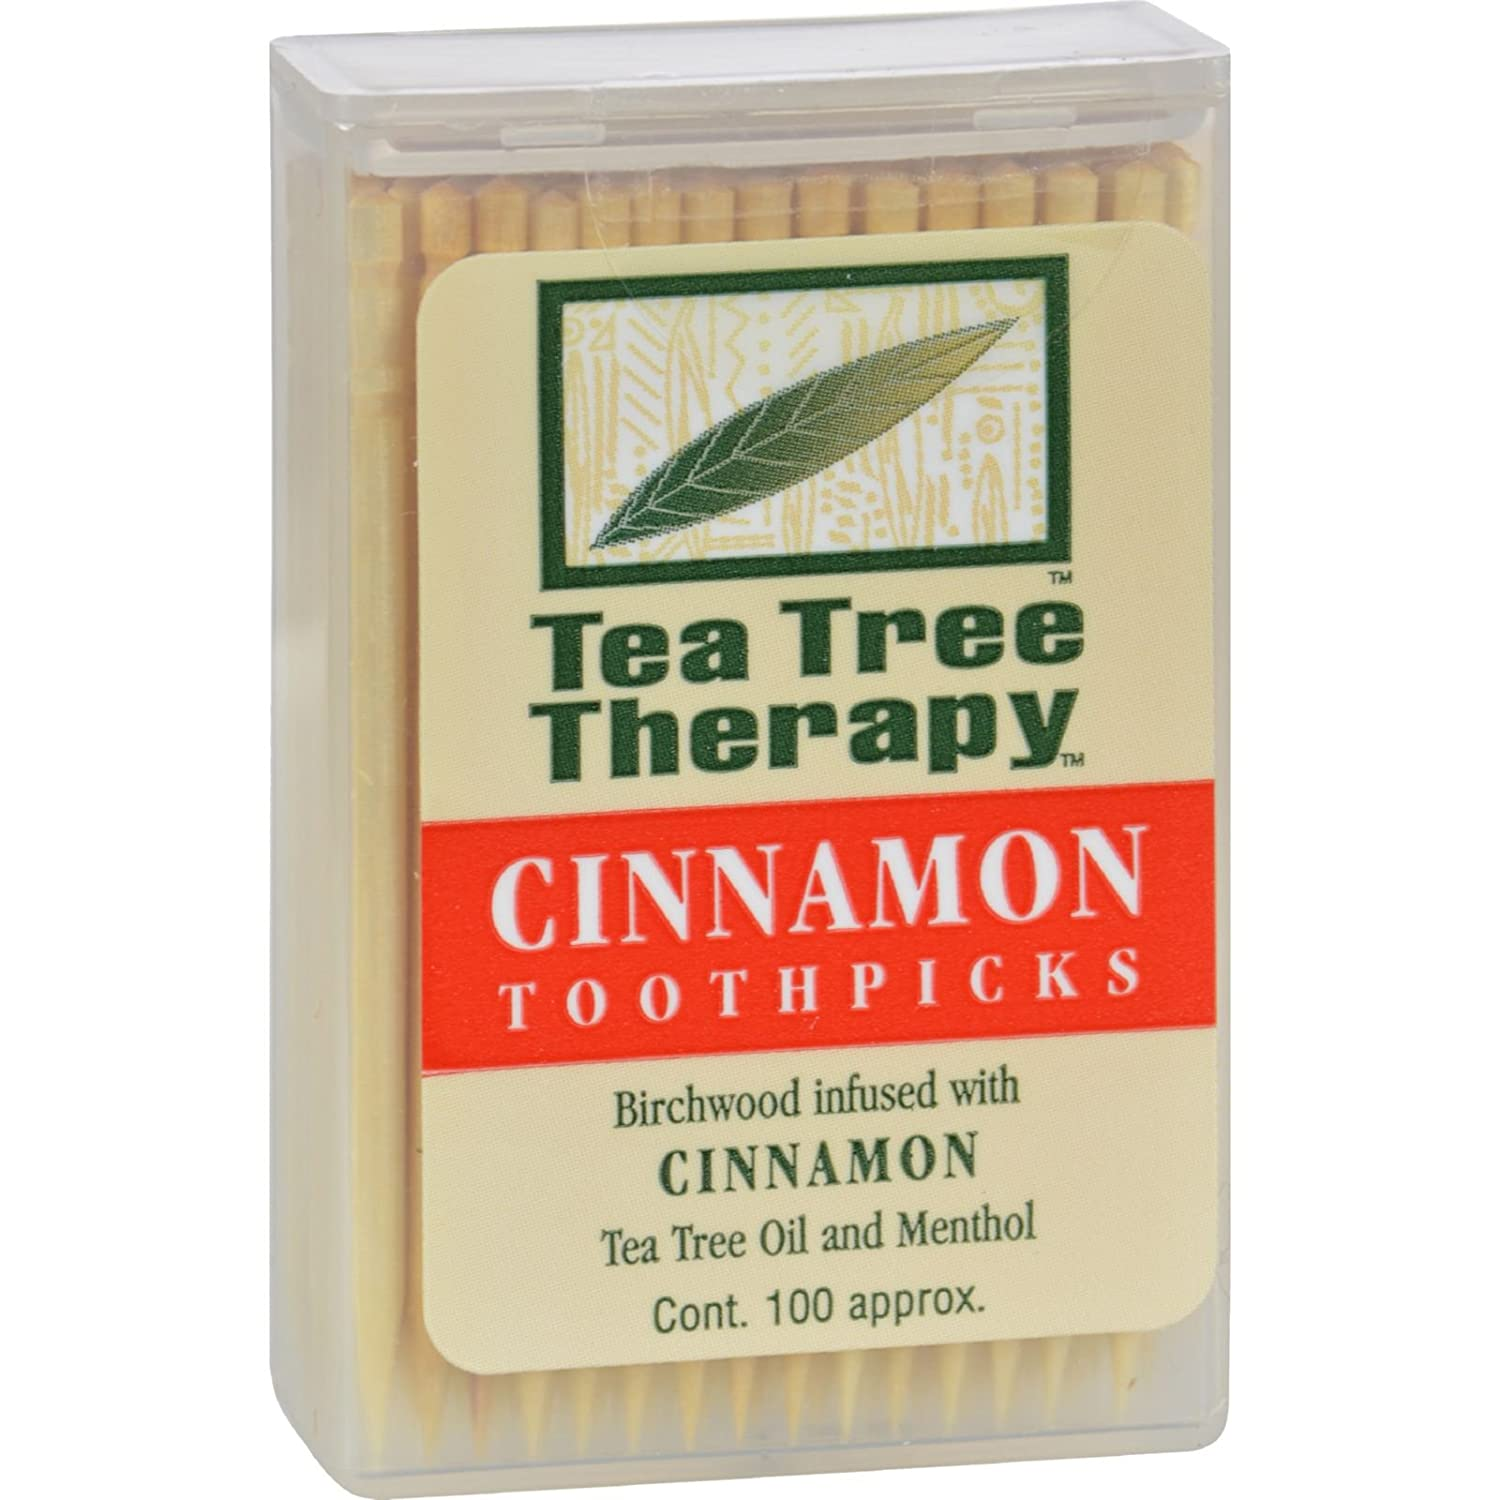 Cinnamon Tea Tree Toothpicks 100 count By Tea Tree Therapy - 12 Pack TeaTreeTherapy INC